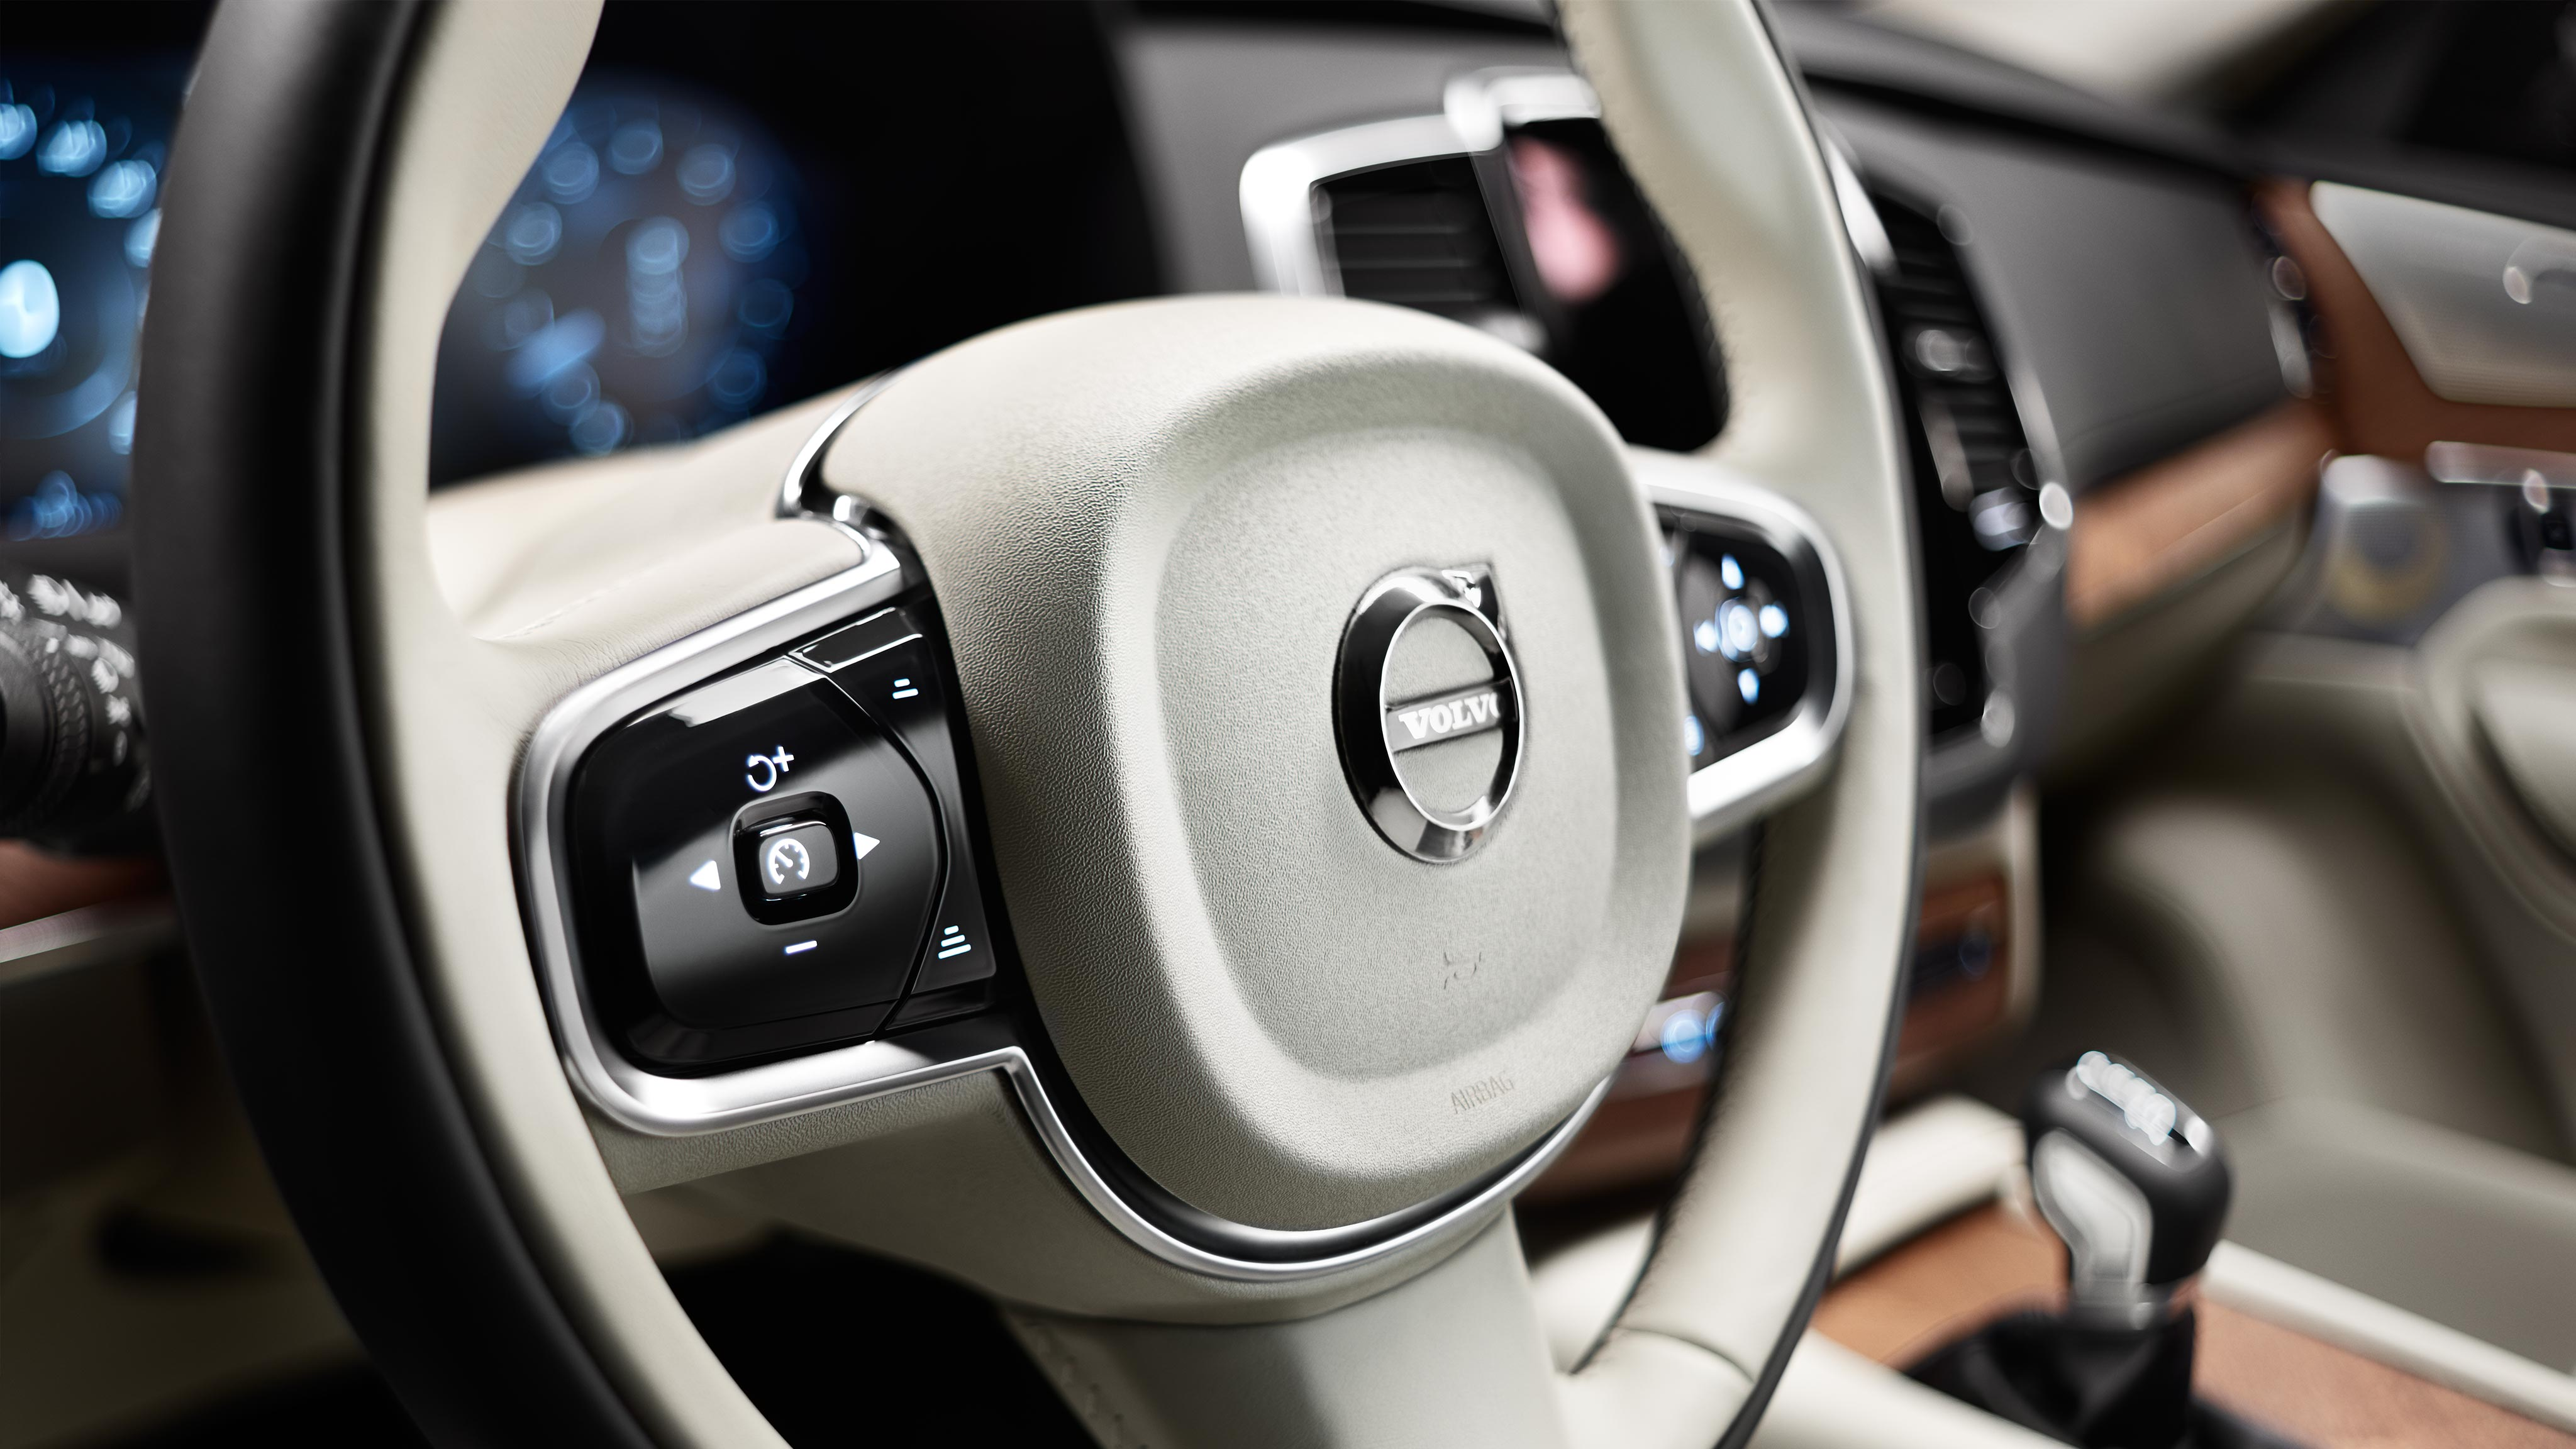 dealership nj factory scheduled cars in plans deals maintenance prepaid htm new ramsey complimentary volvo lease